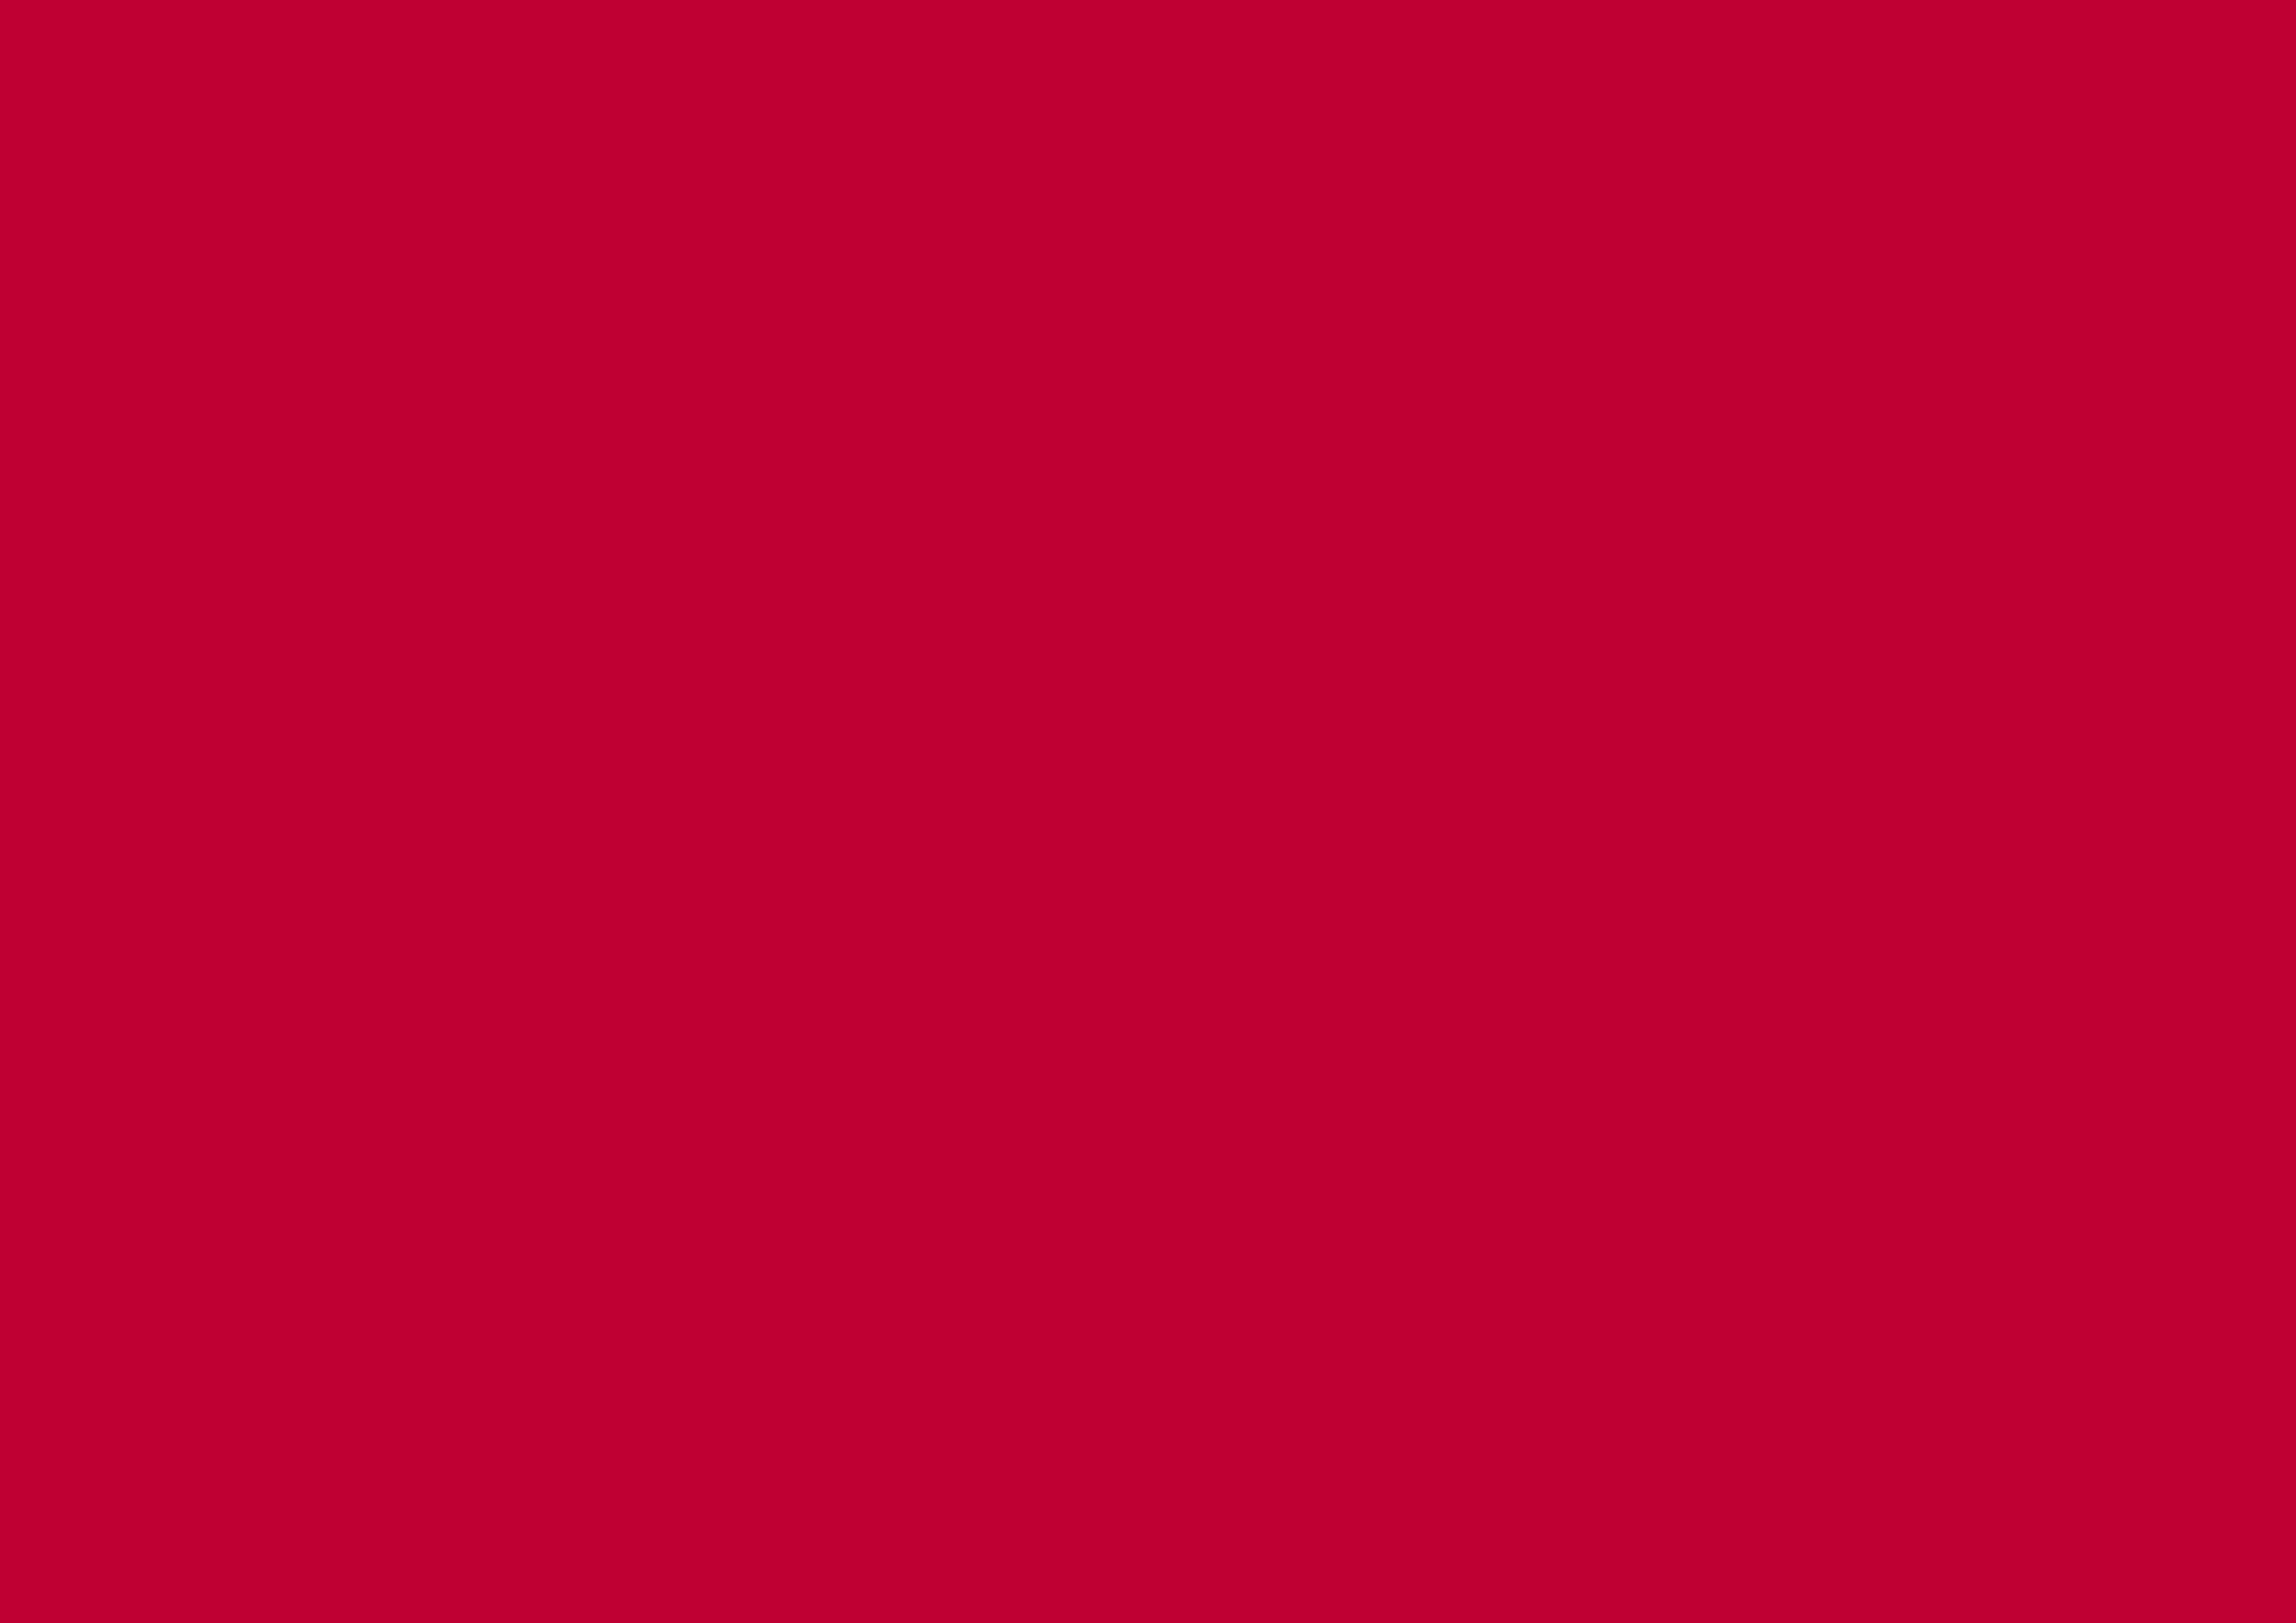 3508x2480 Crimson Glory Solid Color Background